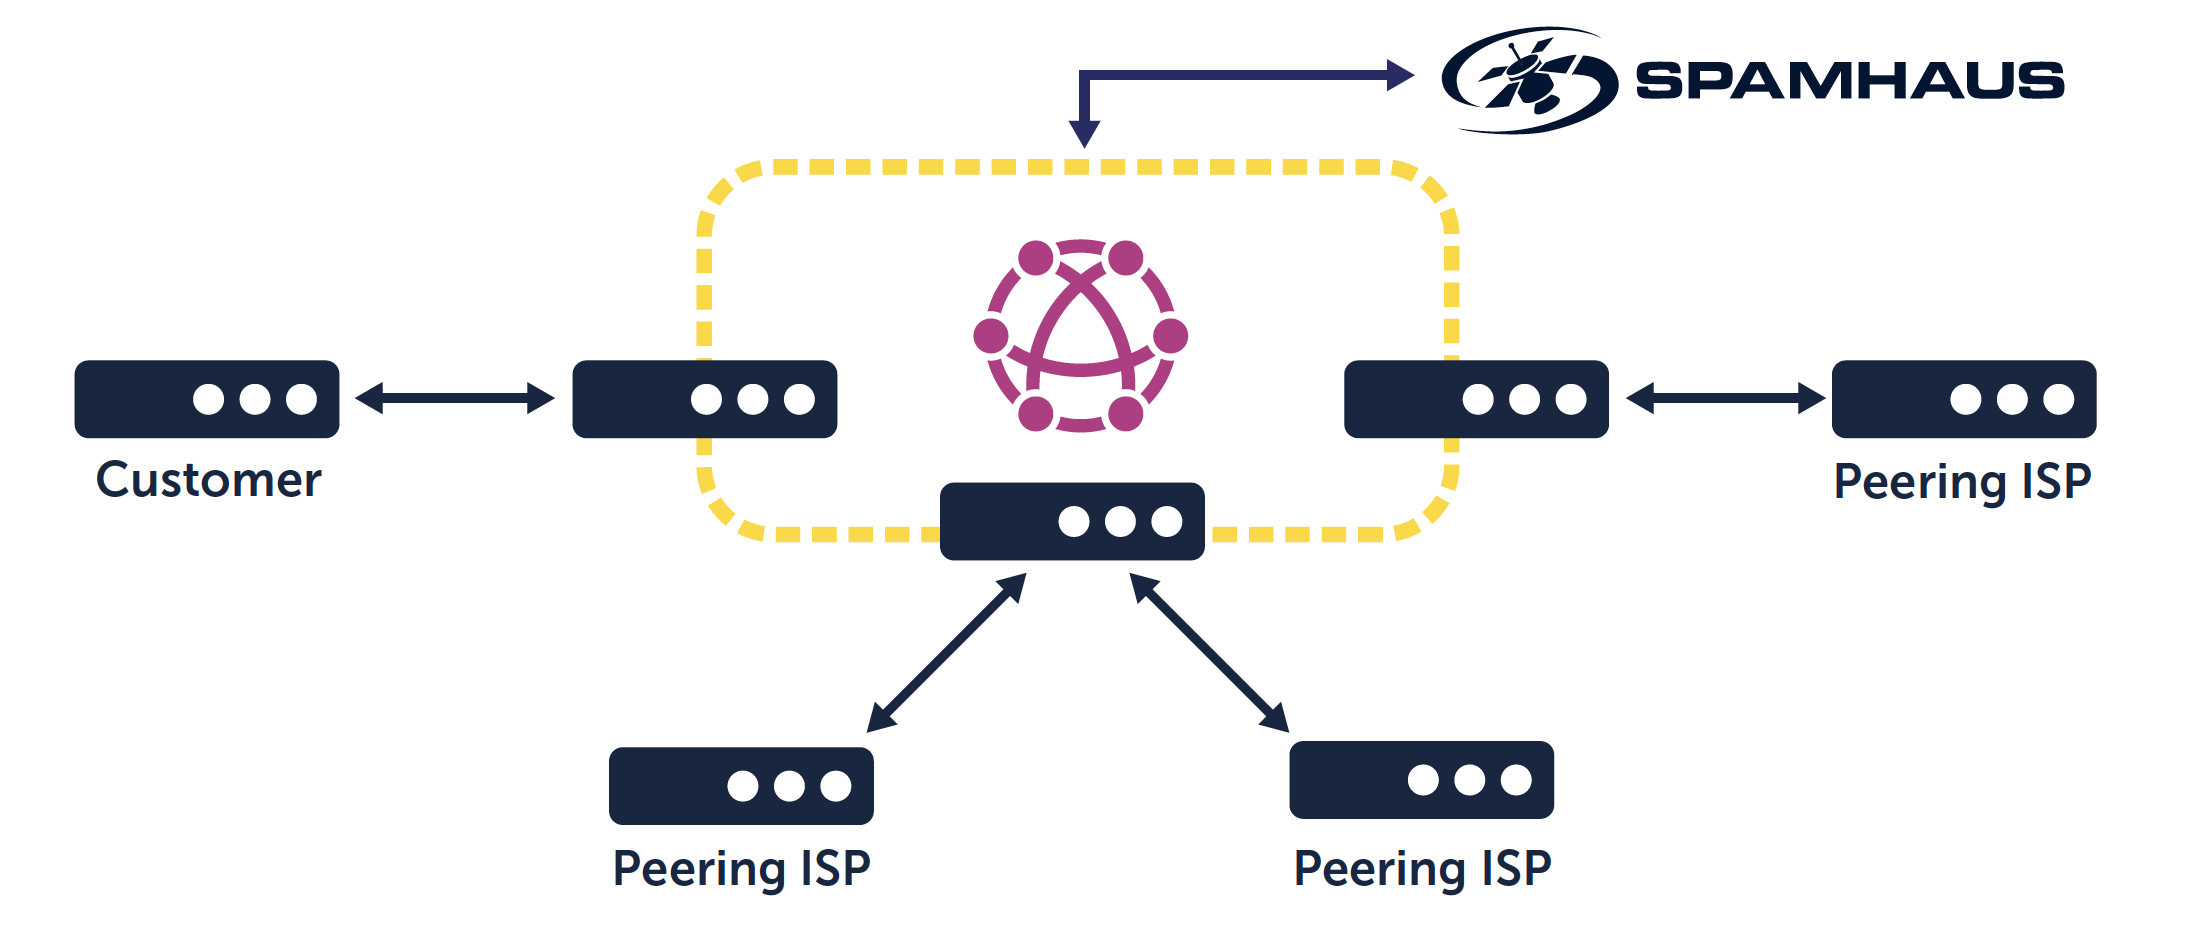 Diagram showing how Spamhaus Border Gateway Protocol Feeds work and help protect the network edge.